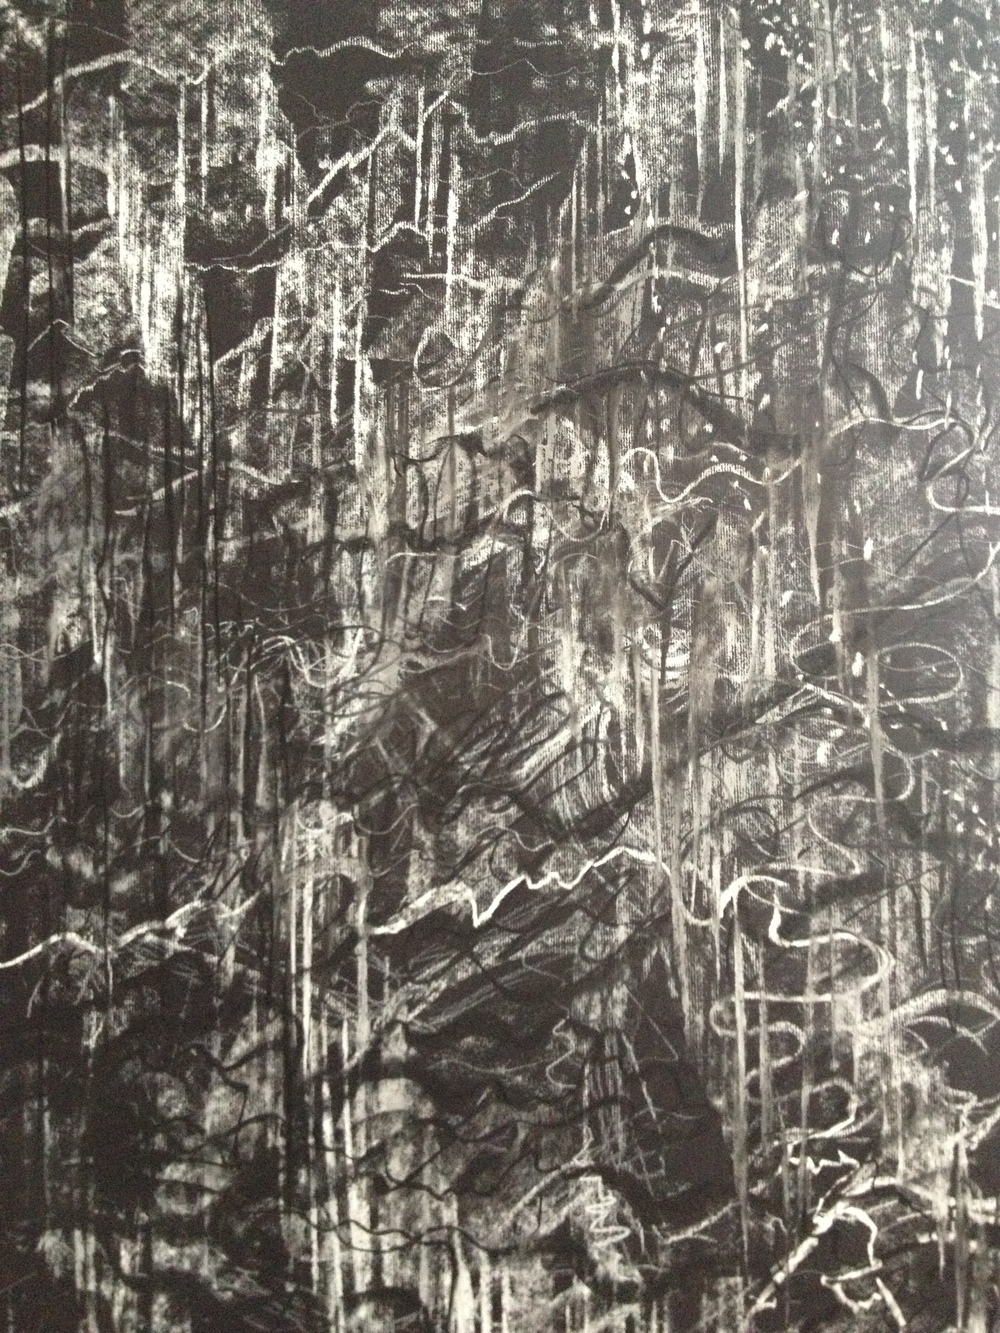 ©KAT 'Sound'   Human voice -  model reading in an alien tongue : charcoal, carbon and chalk on black paper, ( 0,7 x 0,6 m )